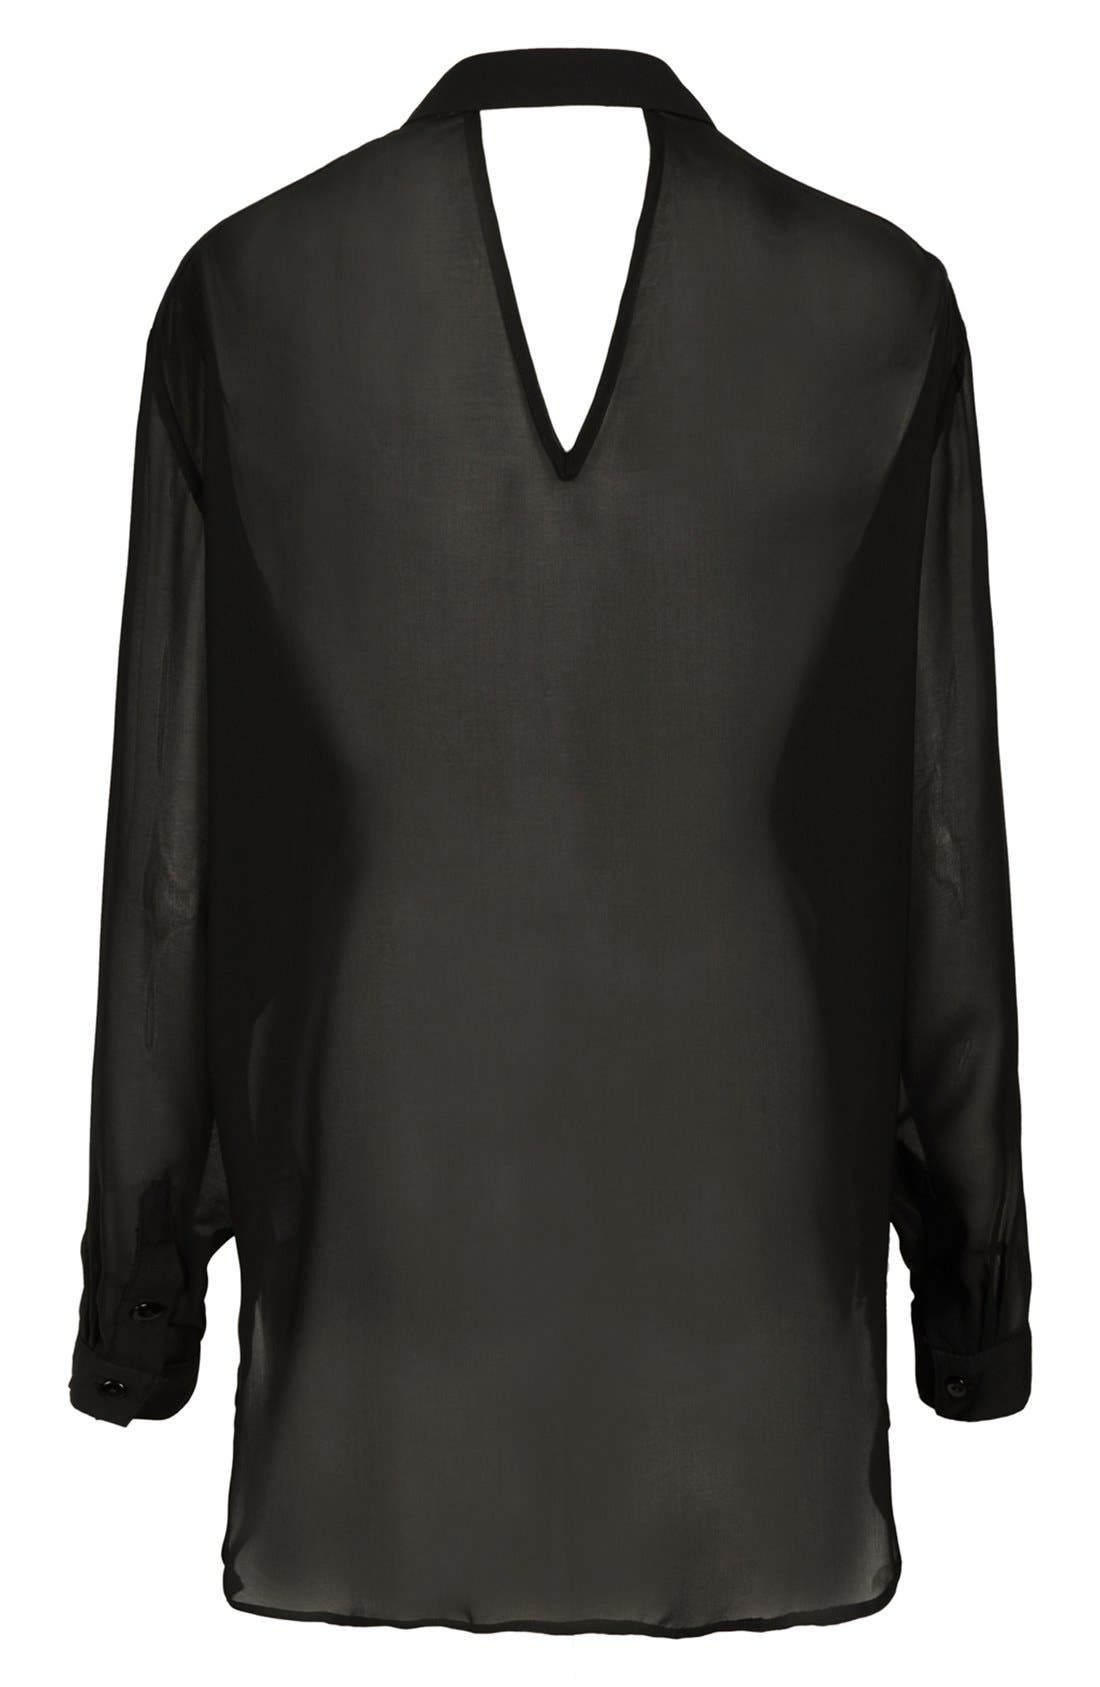 Alternate Image 2  - Topshop 'The Collection Starring Kate Bosworth' Chiffon Shirt